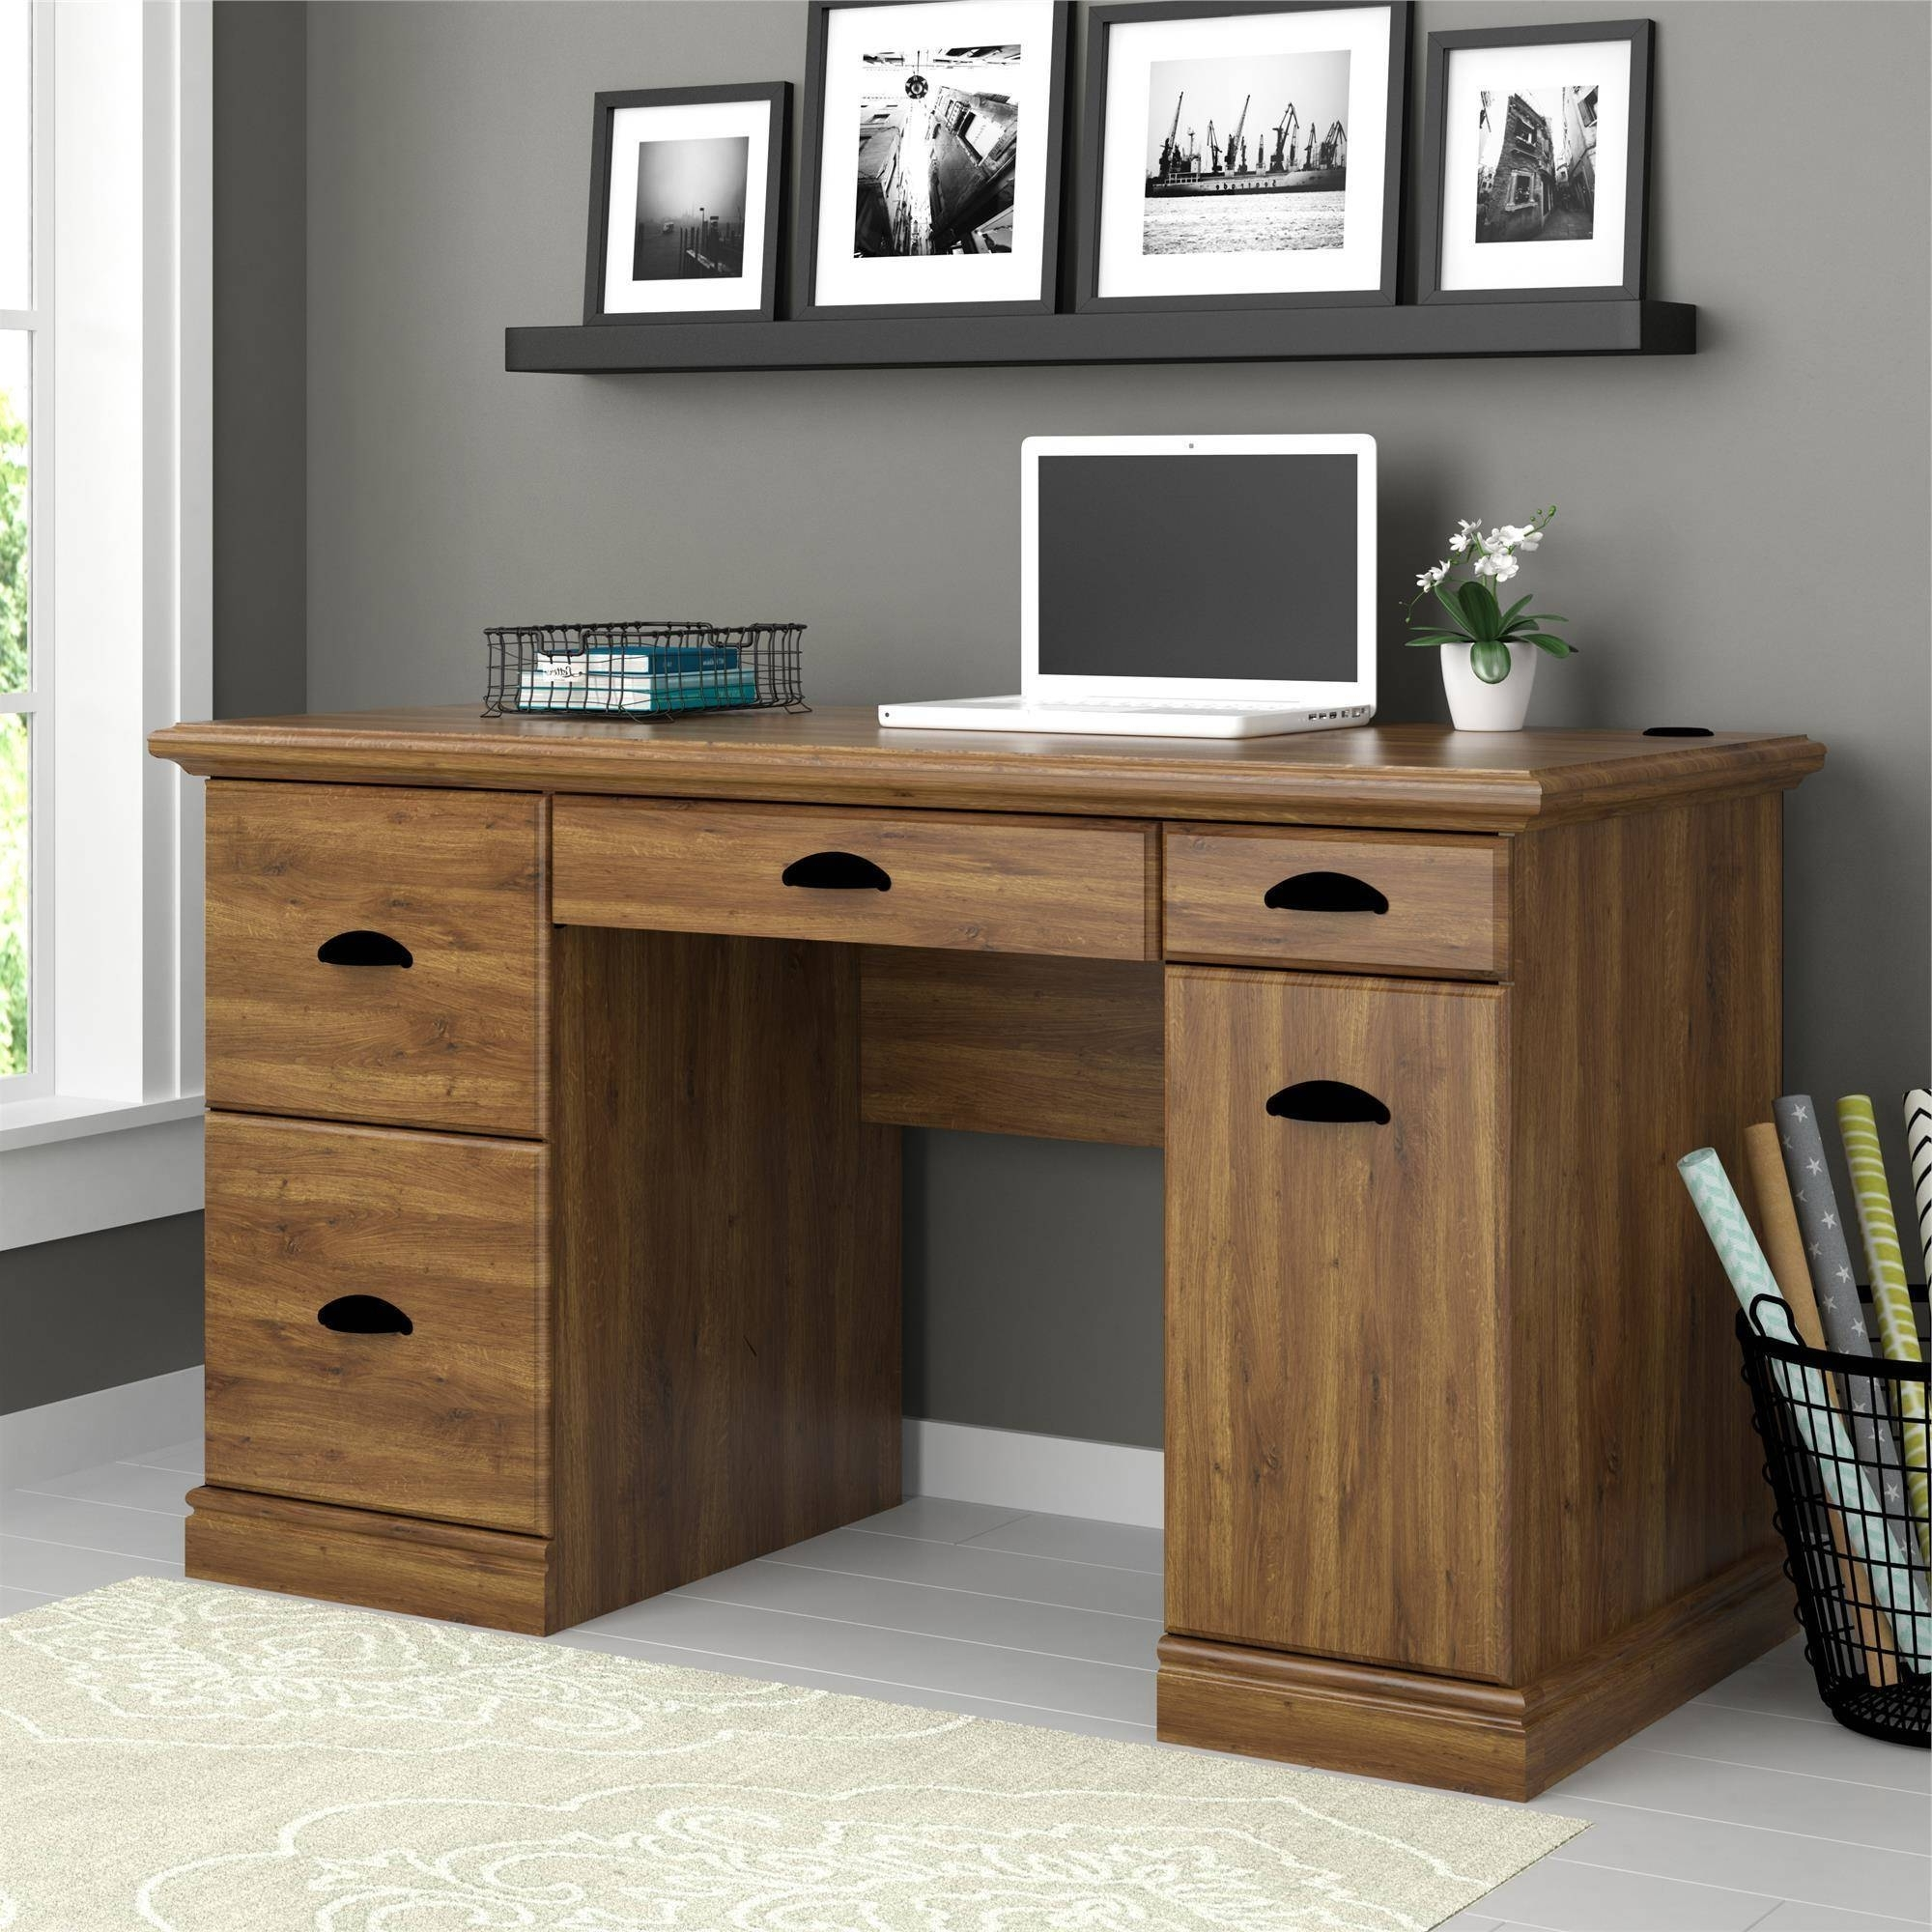 Better Homes And Gardens Computer Desk, Brown Oak – Walmart With Regard To Well Known Computer Desks In Oak (Gallery 20 of 20)